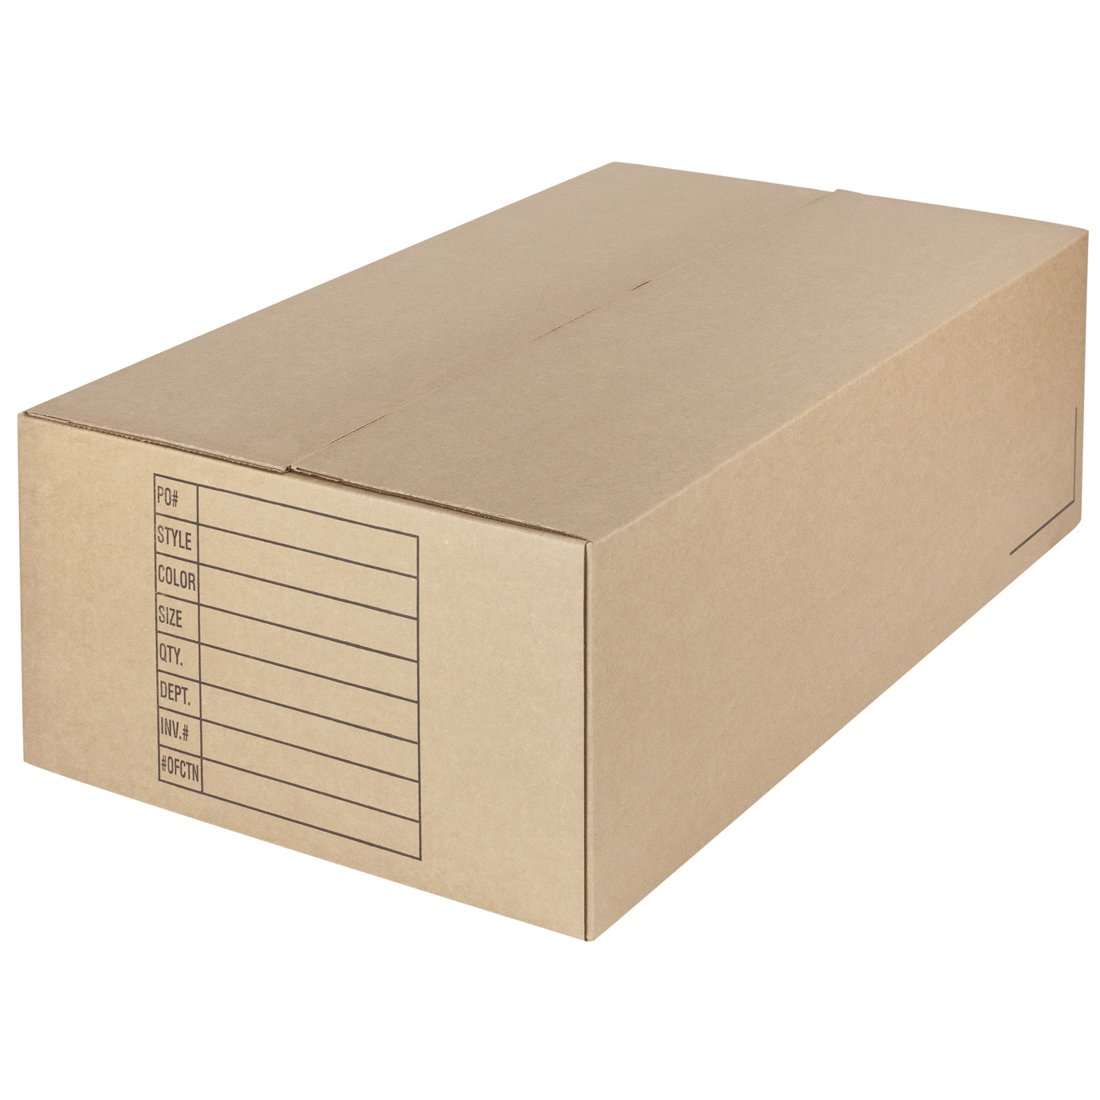 how to add a box to a chitchat shipment